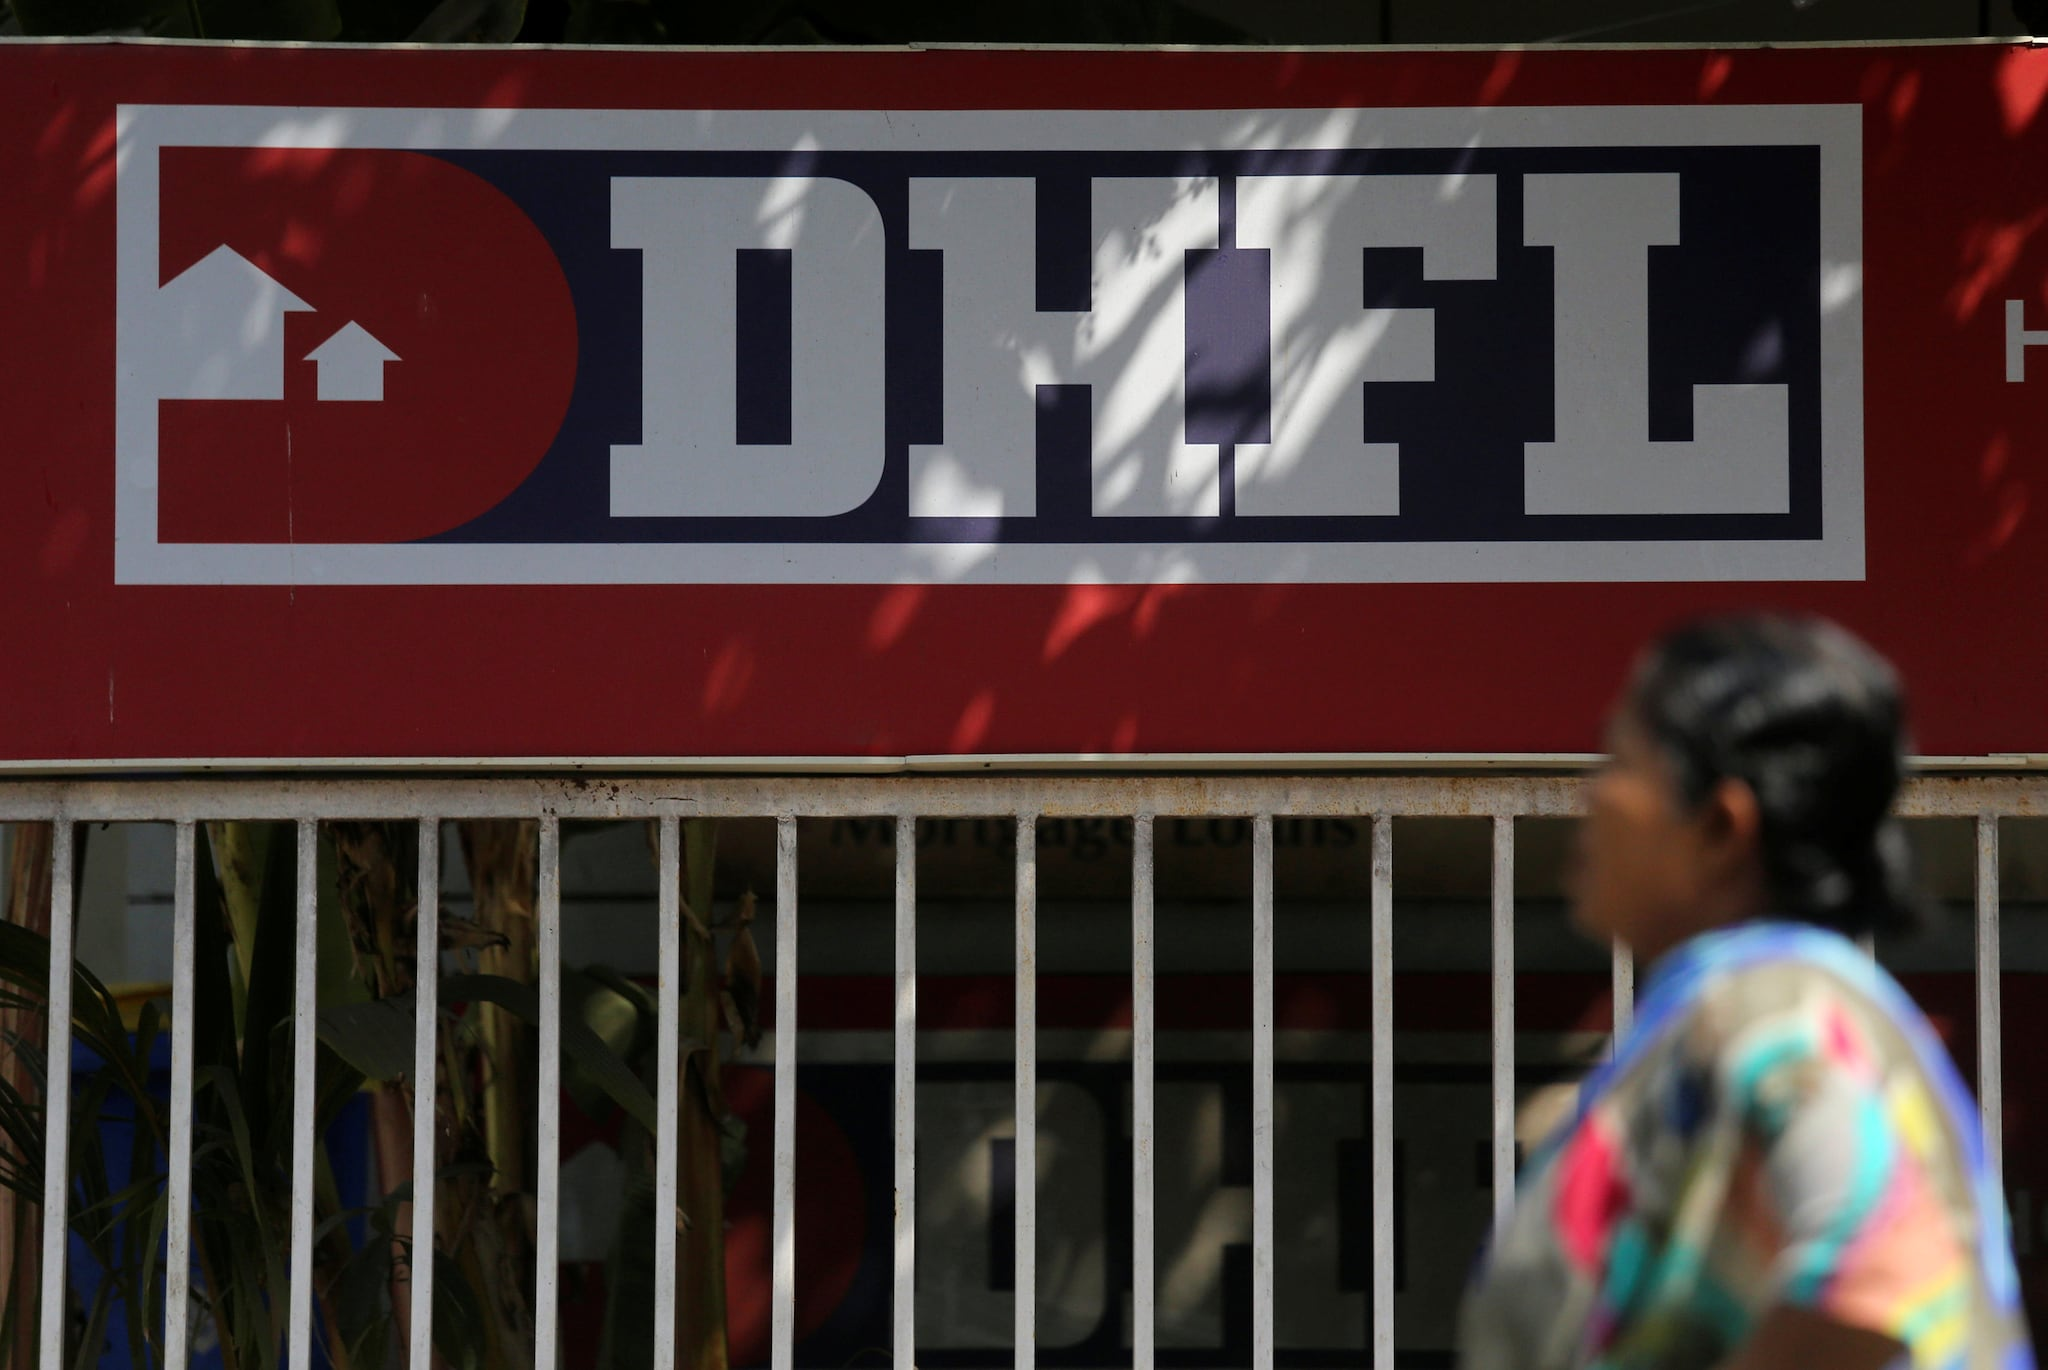 DHFL: Dewan Housing Finance Corp Ltd said it has paid Rs 962 crore towards interest payment on debt instruments which fell due on June 4, and would seek a rating upgrade as it met the seven-day